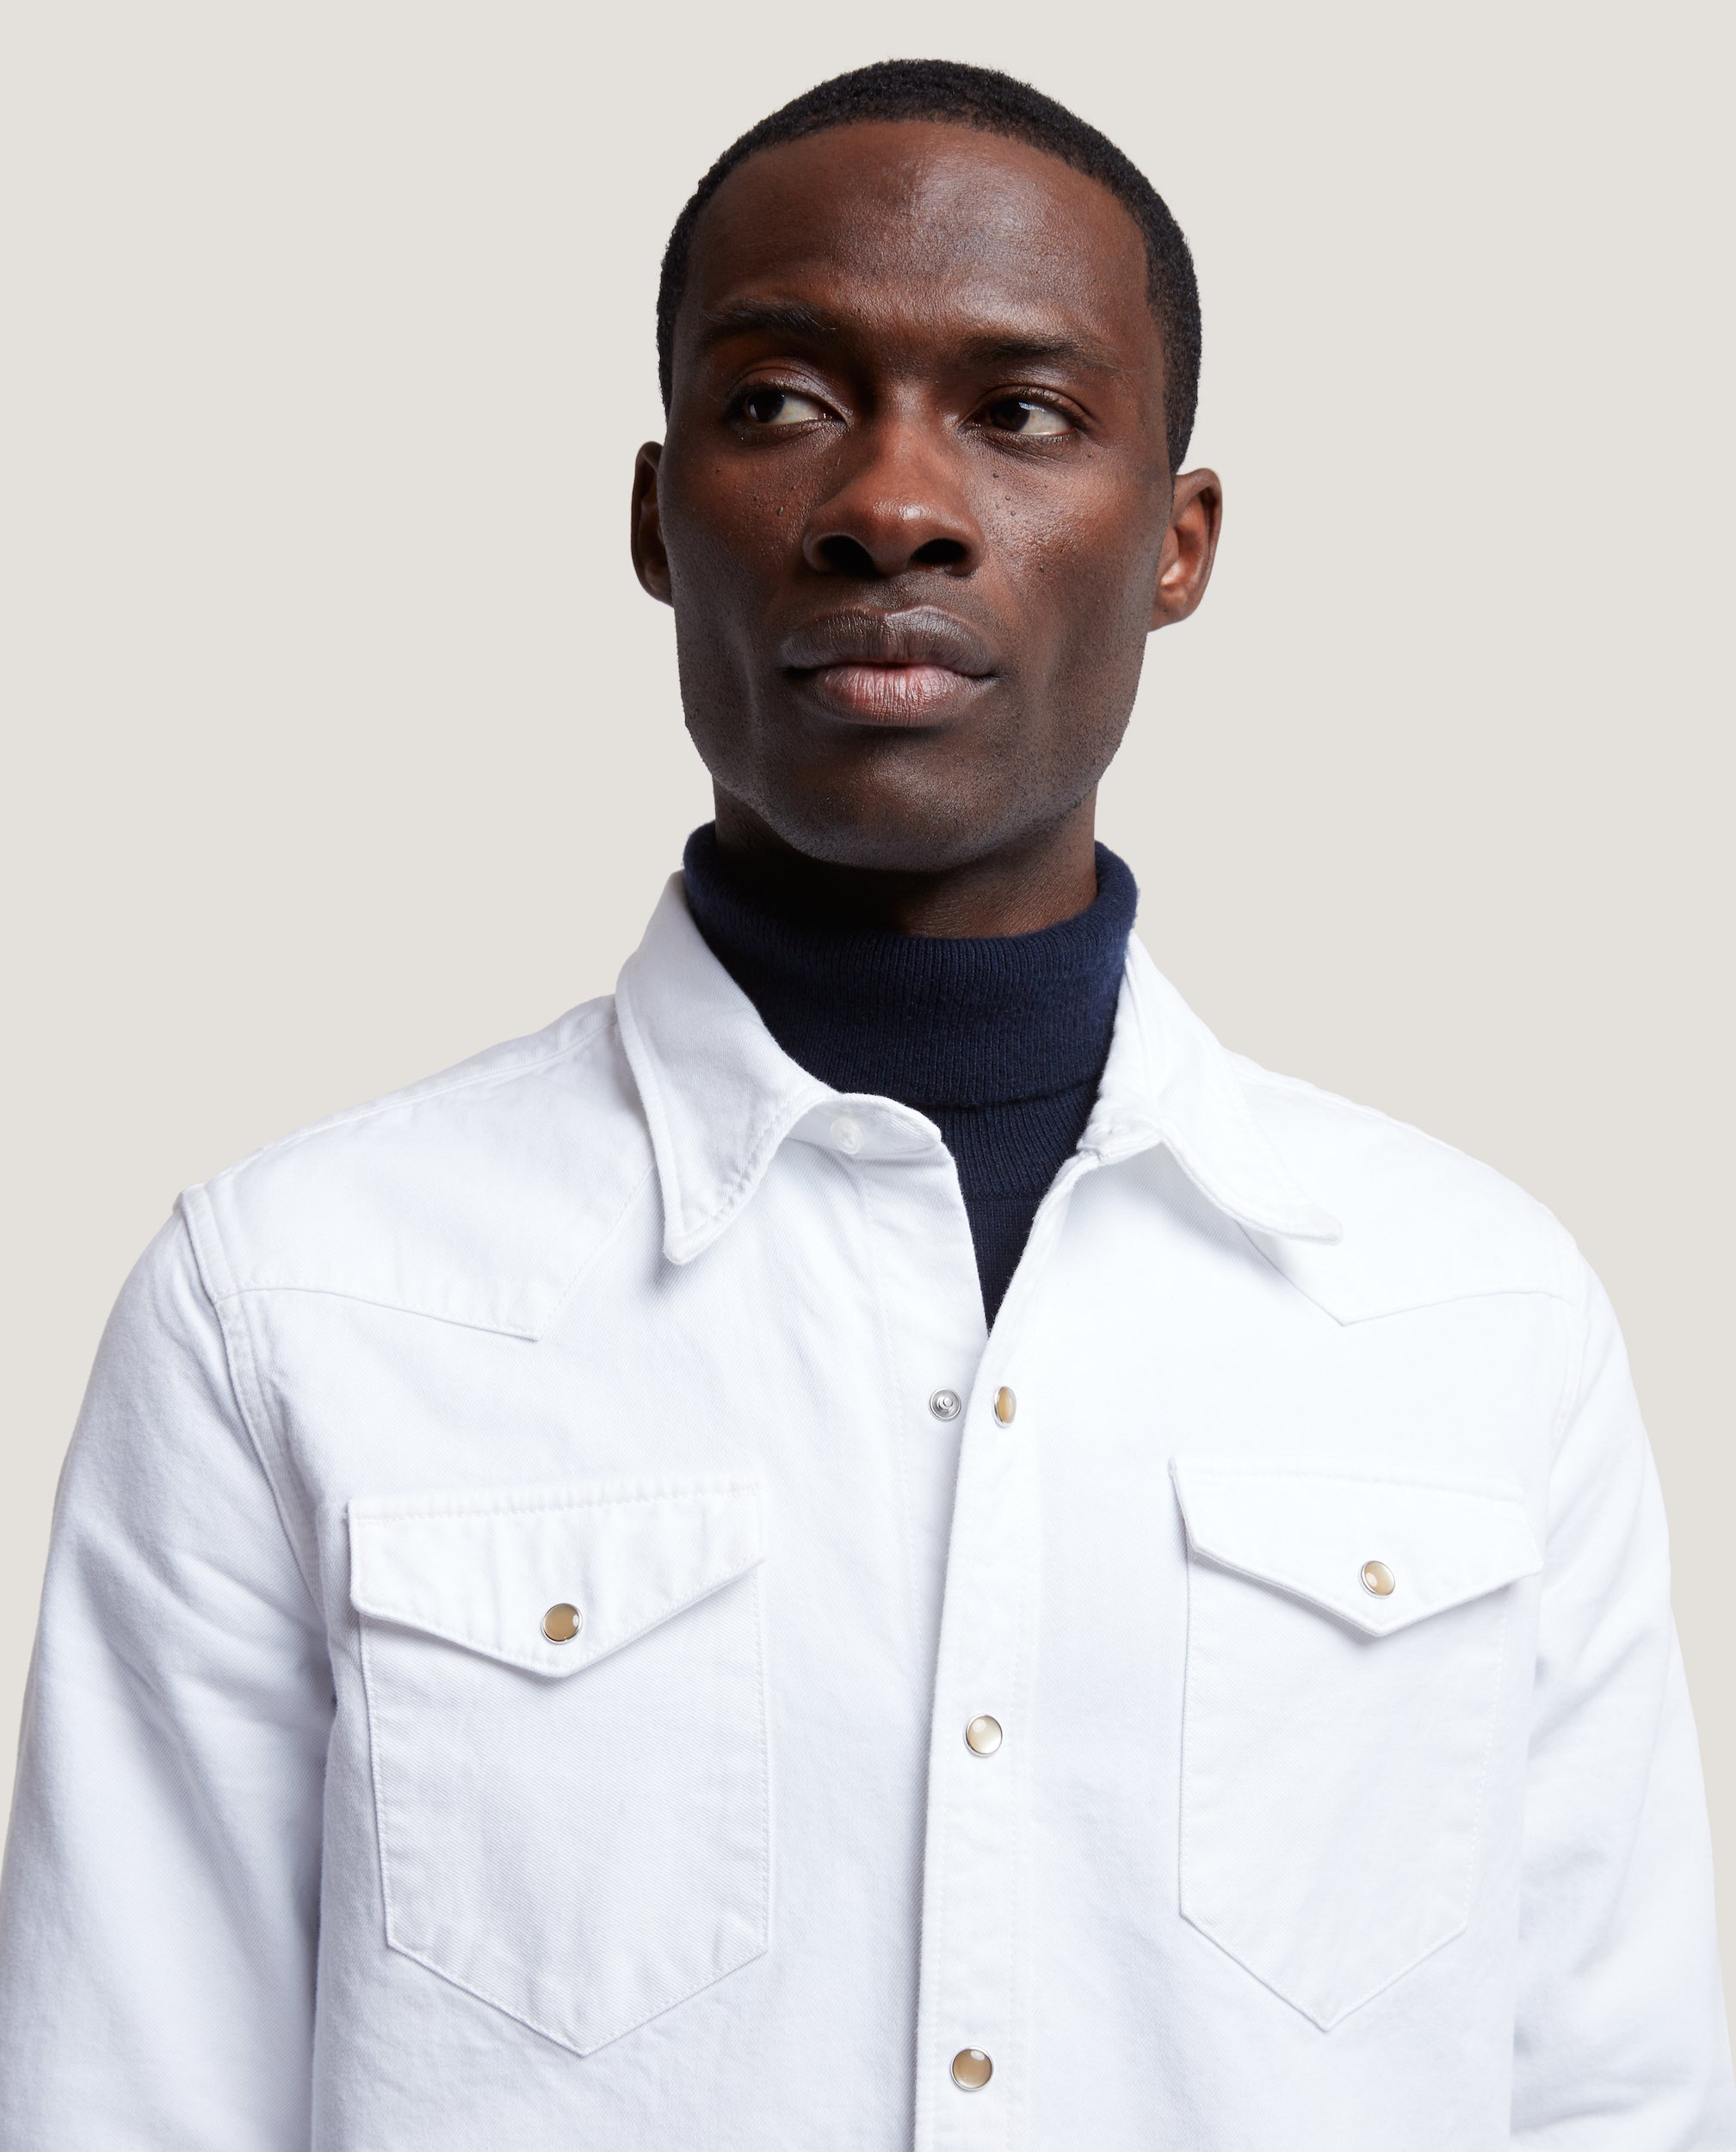 ROHE Western denim shirt | White selvedge